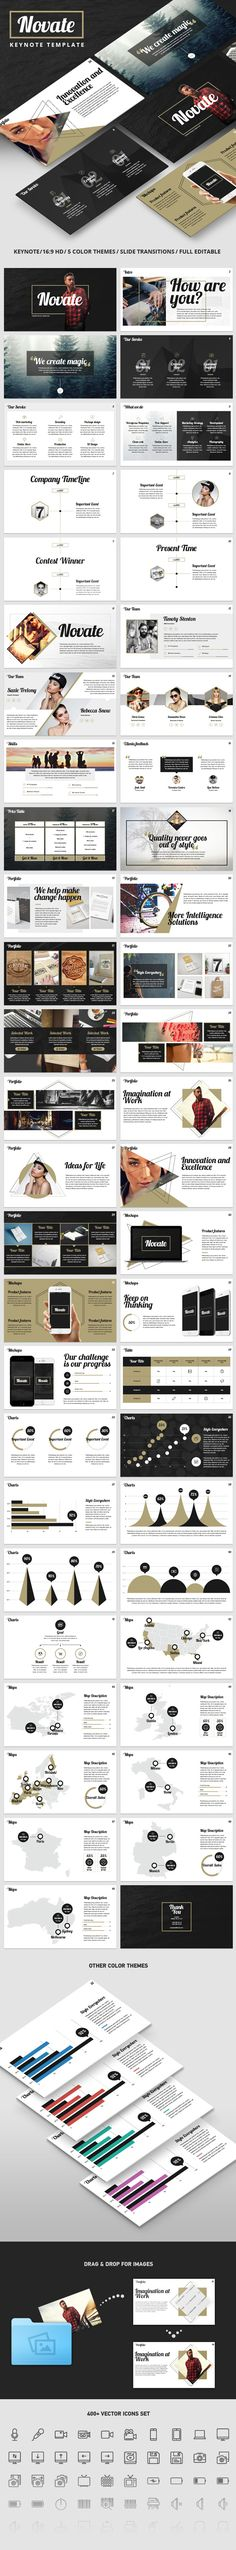 NOVATE - Creative Keynote Presentation Template. Download here: http://graphicriver.net/item/novate-creative-keynote-presentation-template/15955012?ref=ksioks